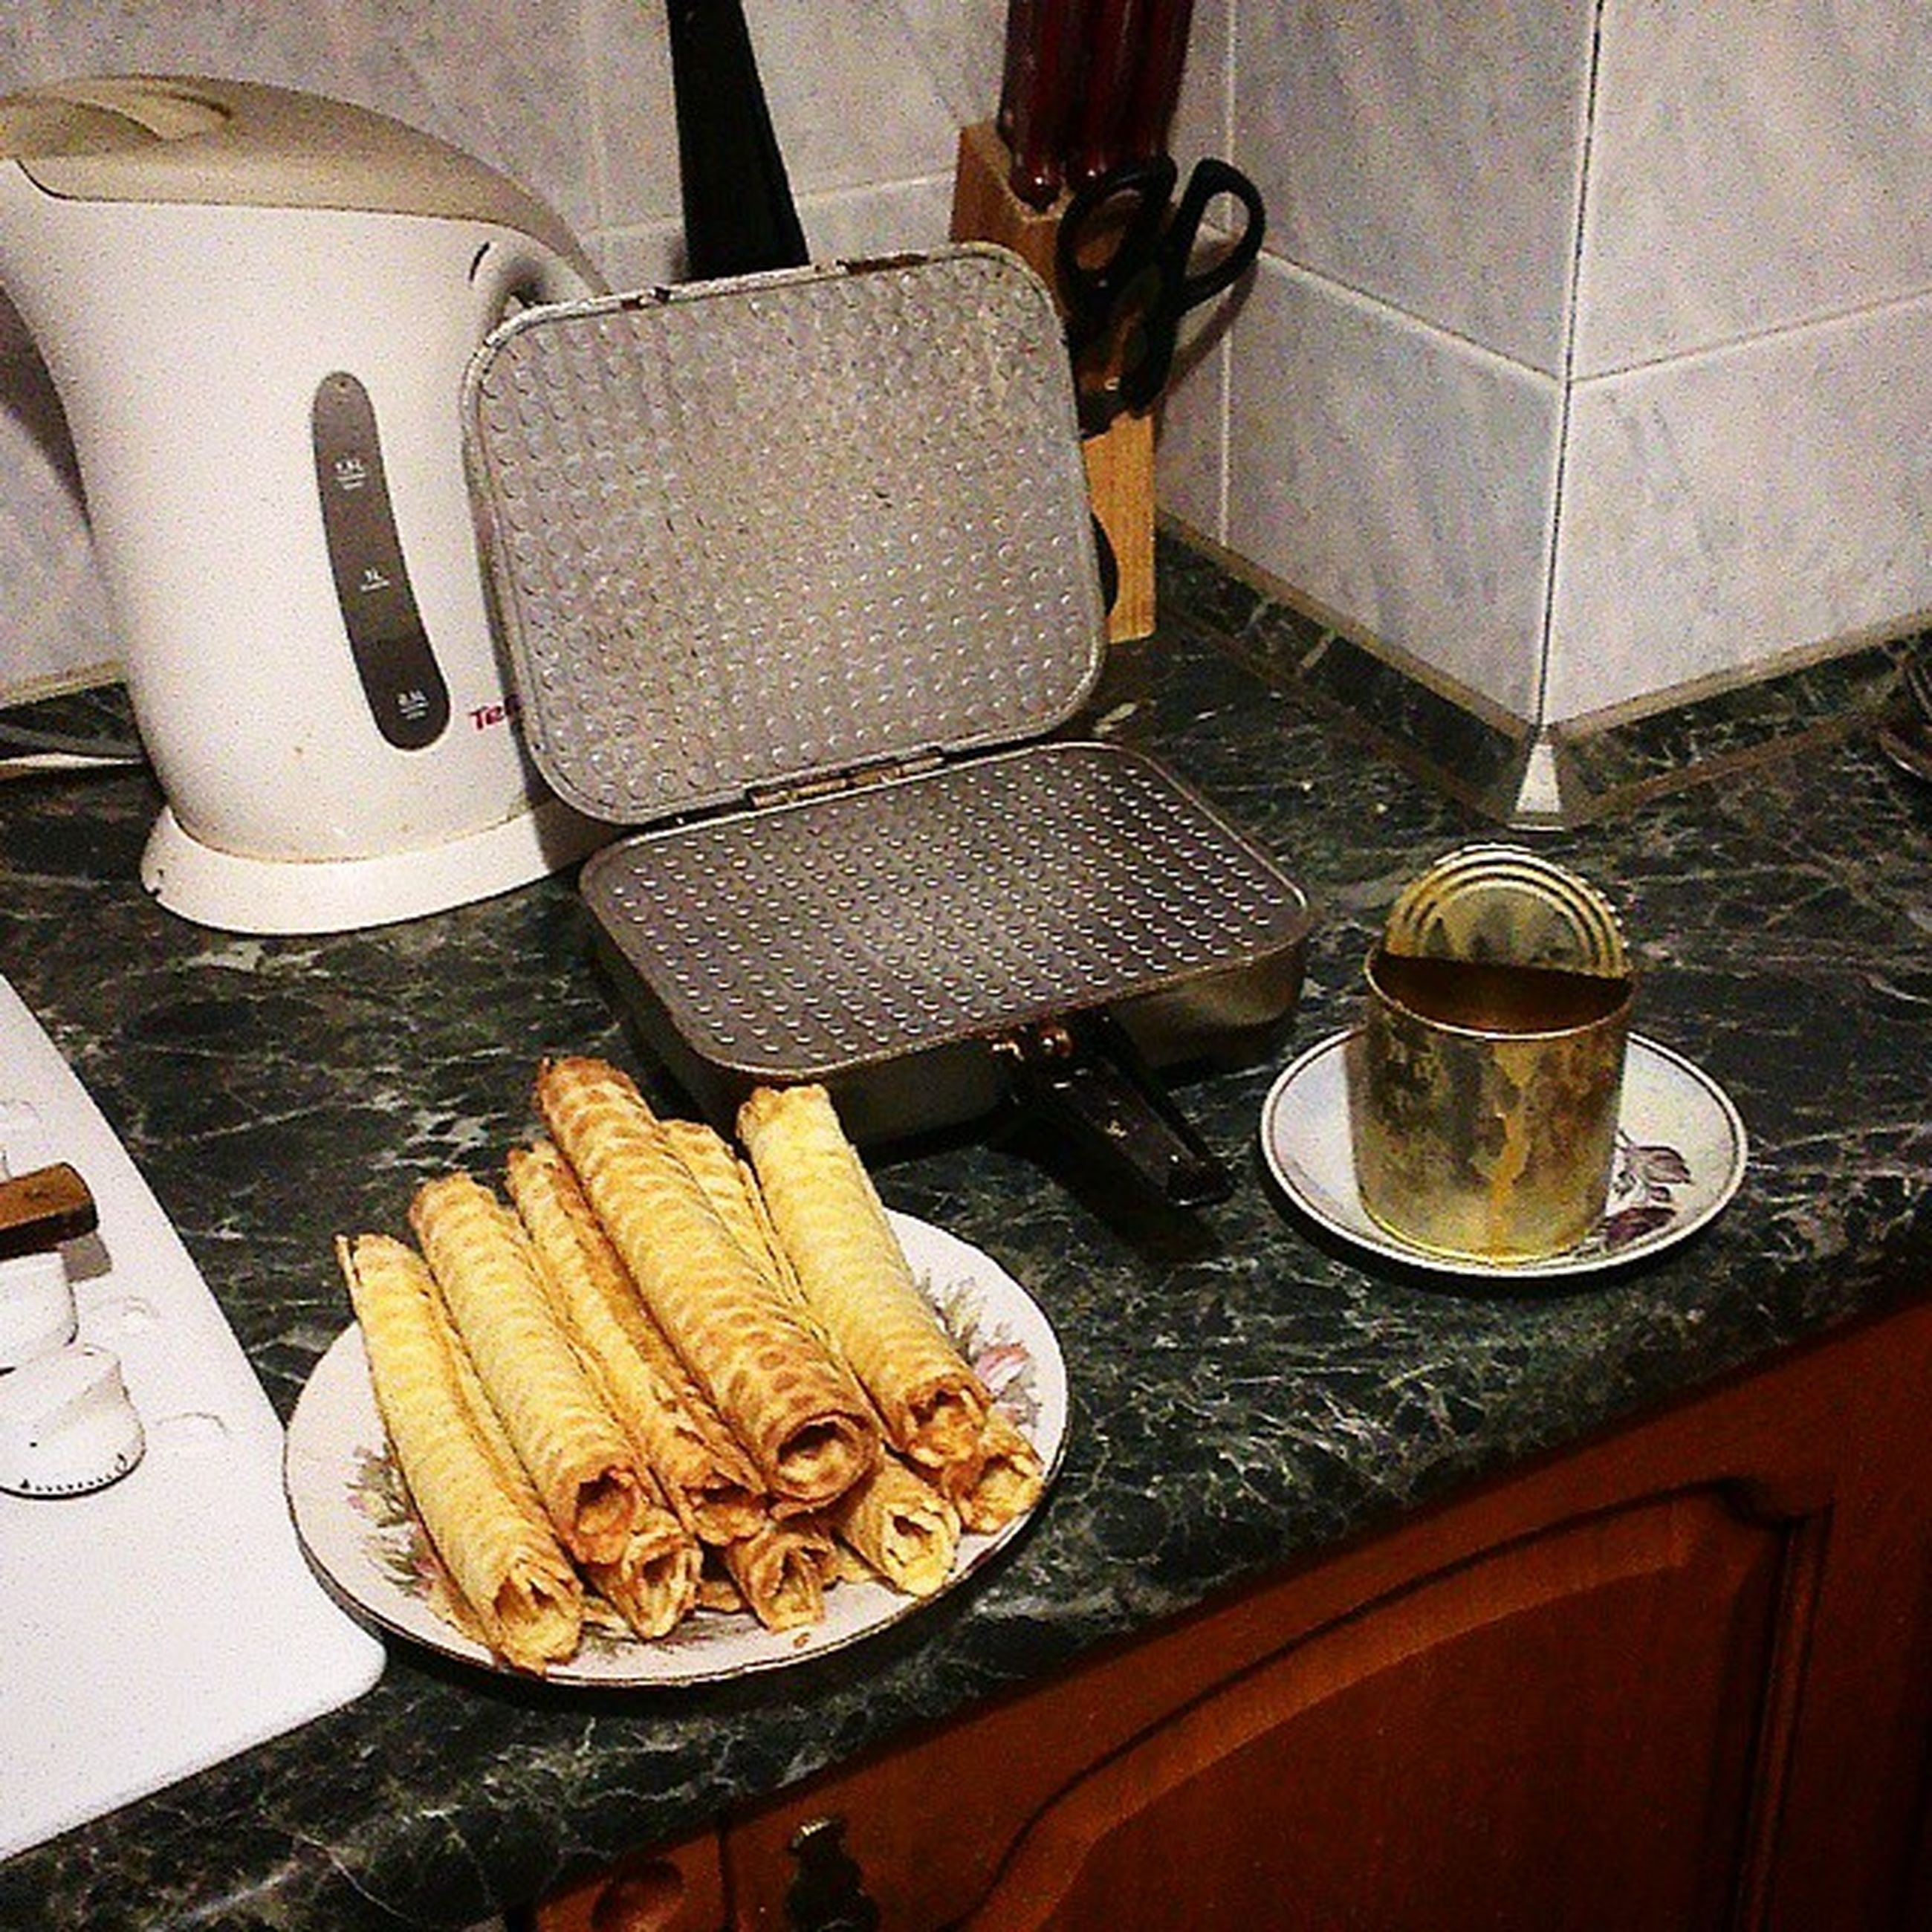 indoors, table, still life, high angle view, food and drink, chair, plate, kitchen utensil, no people, close-up, spoon, fork, empty, absence, arrangement, food, wood - material, domestic kitchen, coffee cup, bowl